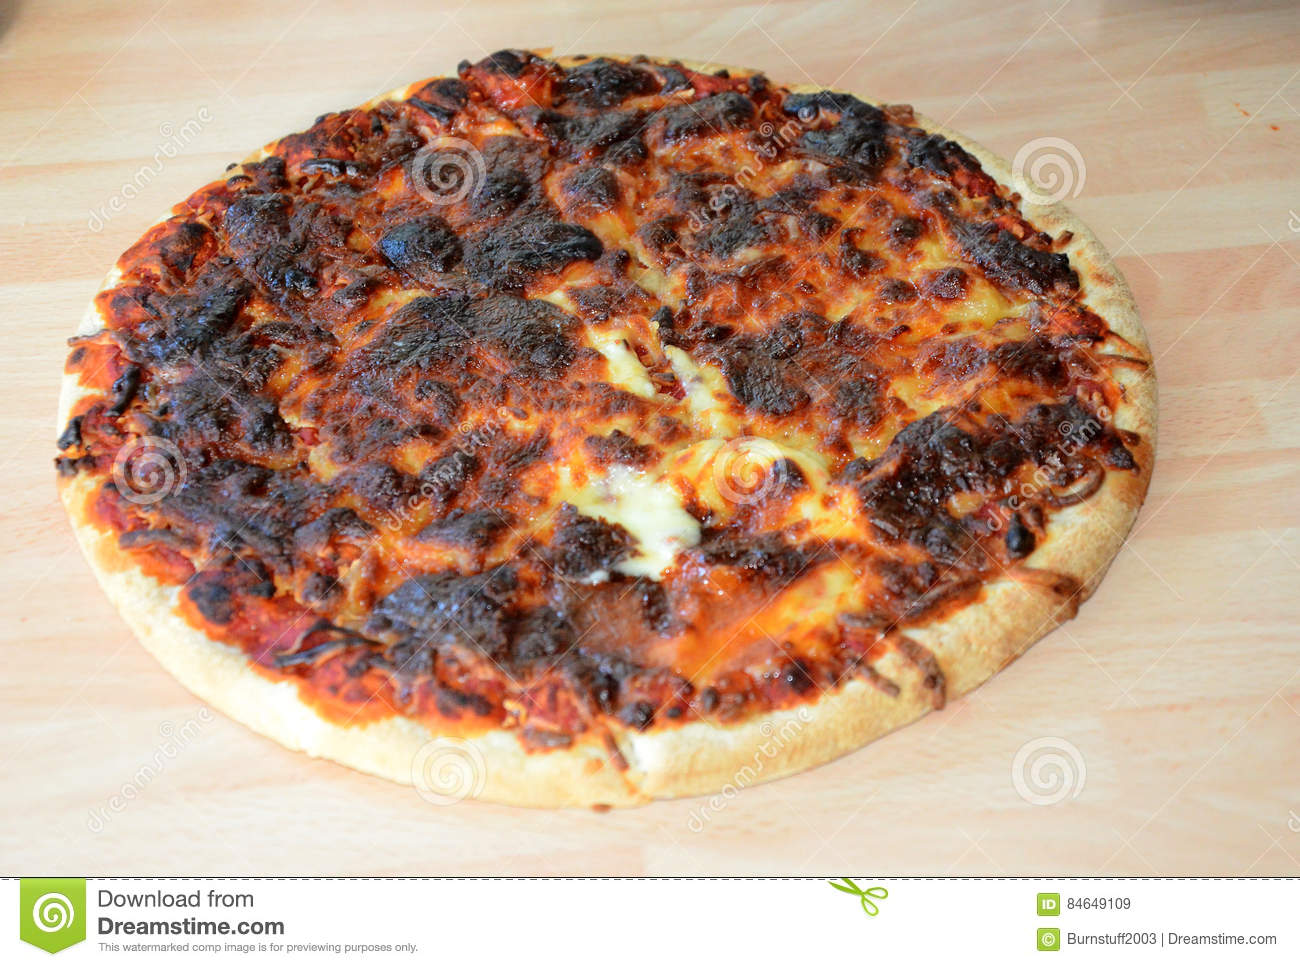 Dinner-burned-pizza-bad-cooking-cheese-84649109-a